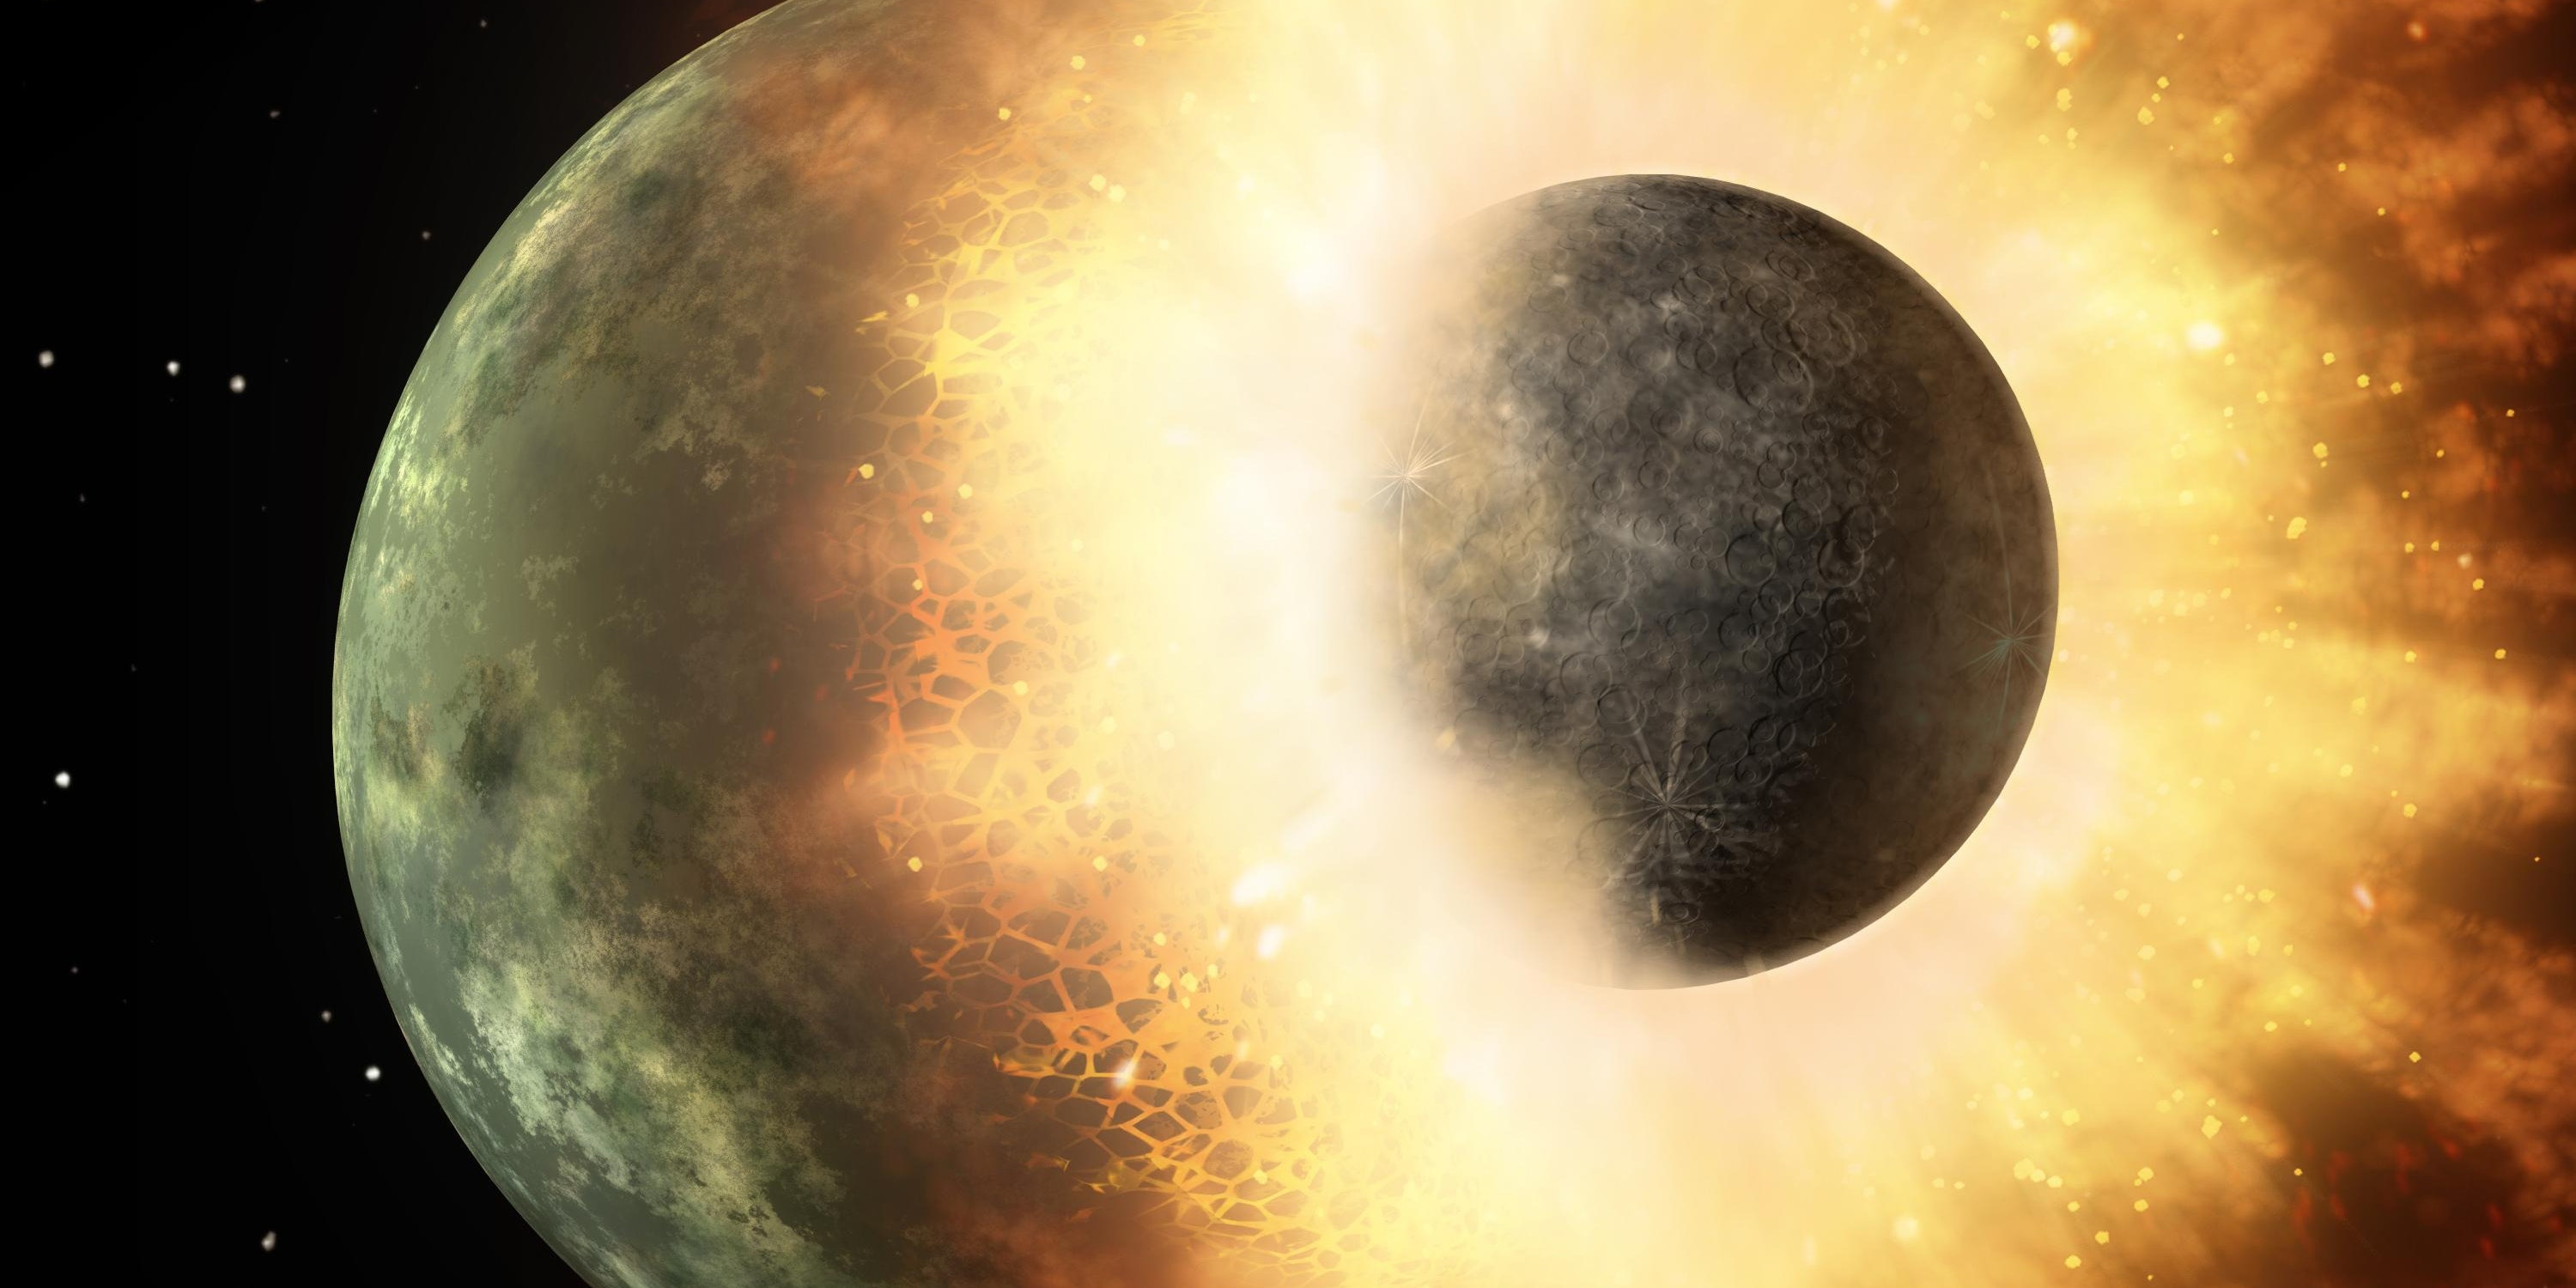 This artist's concept shows a celestial body about the size of our moon slamming at great speed into a body the size of Mercury. NASA's Spitzer Space Telescope found evidence that a high-speed collision of this sort occurred a few thousand years ago around a young star, called HD 172555, still in the early stages of planet formation. The star is about 100 light-years from Earth.